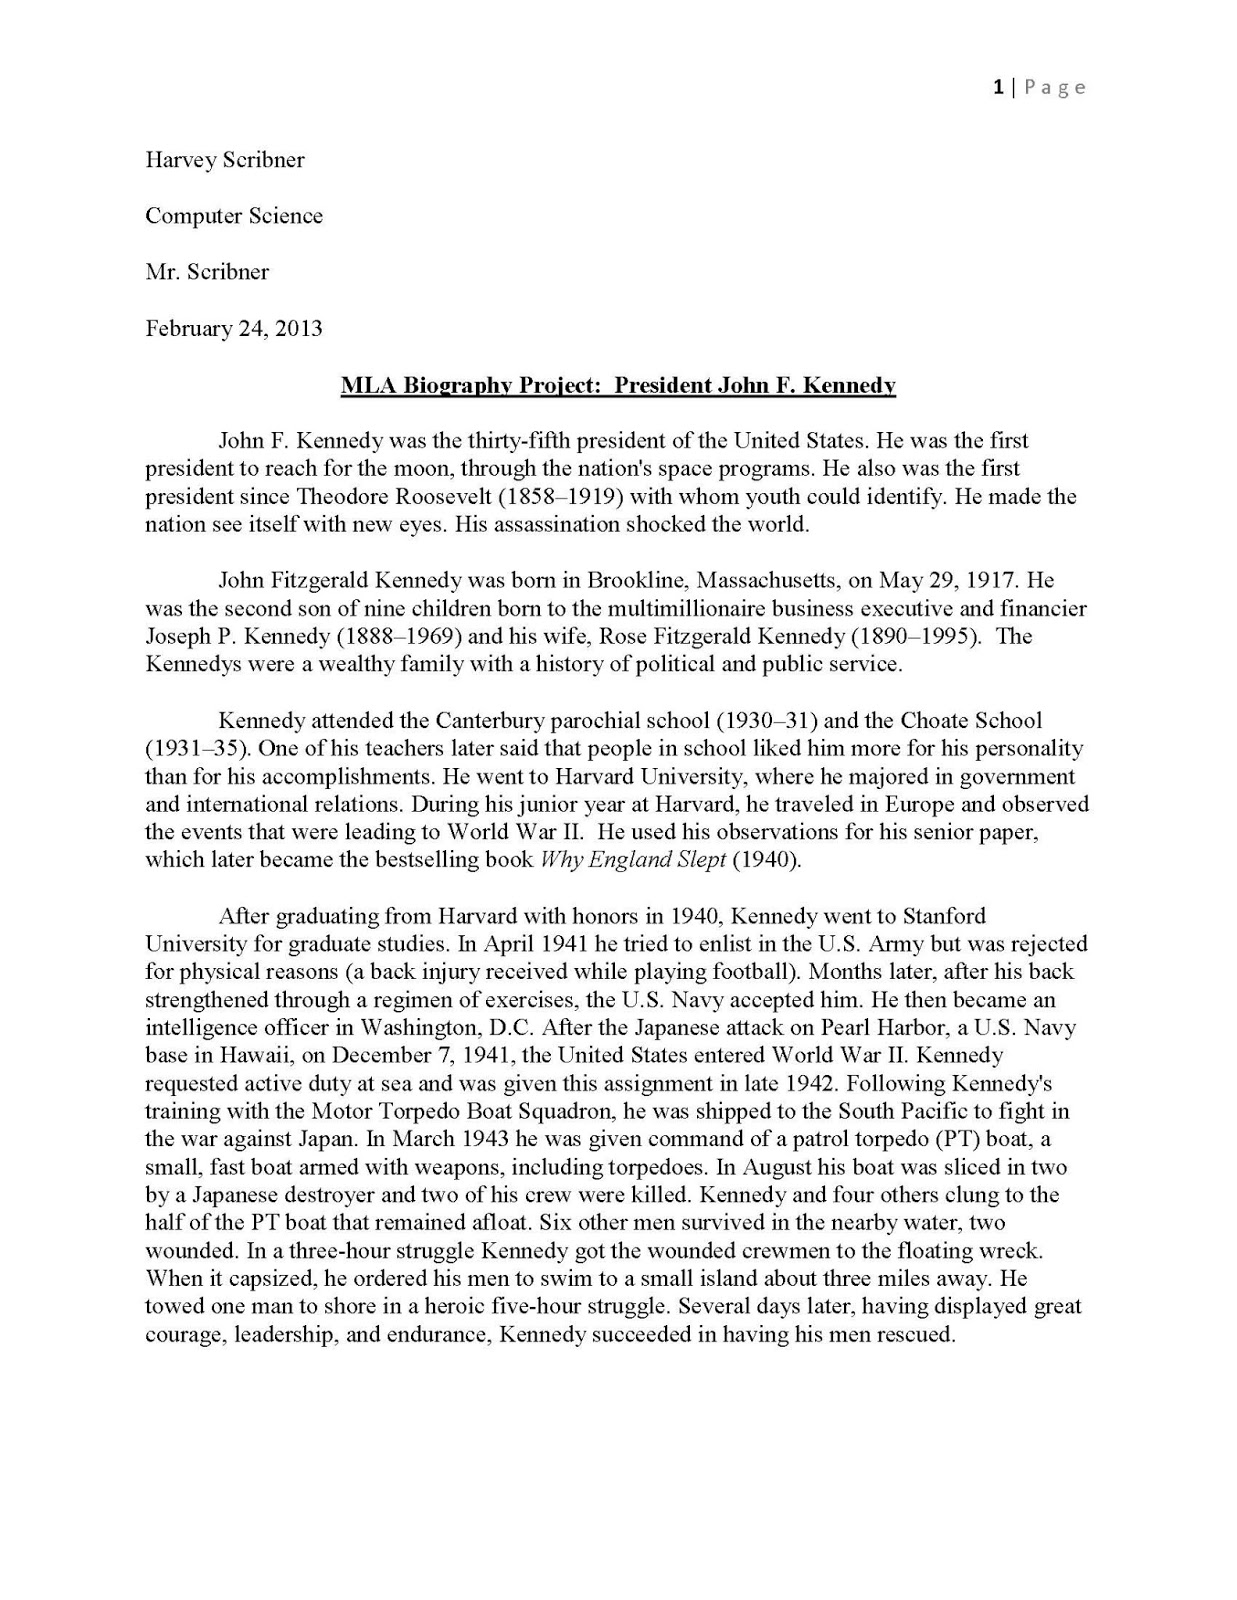 013 Essay Example Jfk20mla20short20form20biography20report20example Page 1 Shocking Short Answer Rubric Apush About Slavery In America Questions Internal Medicine Full